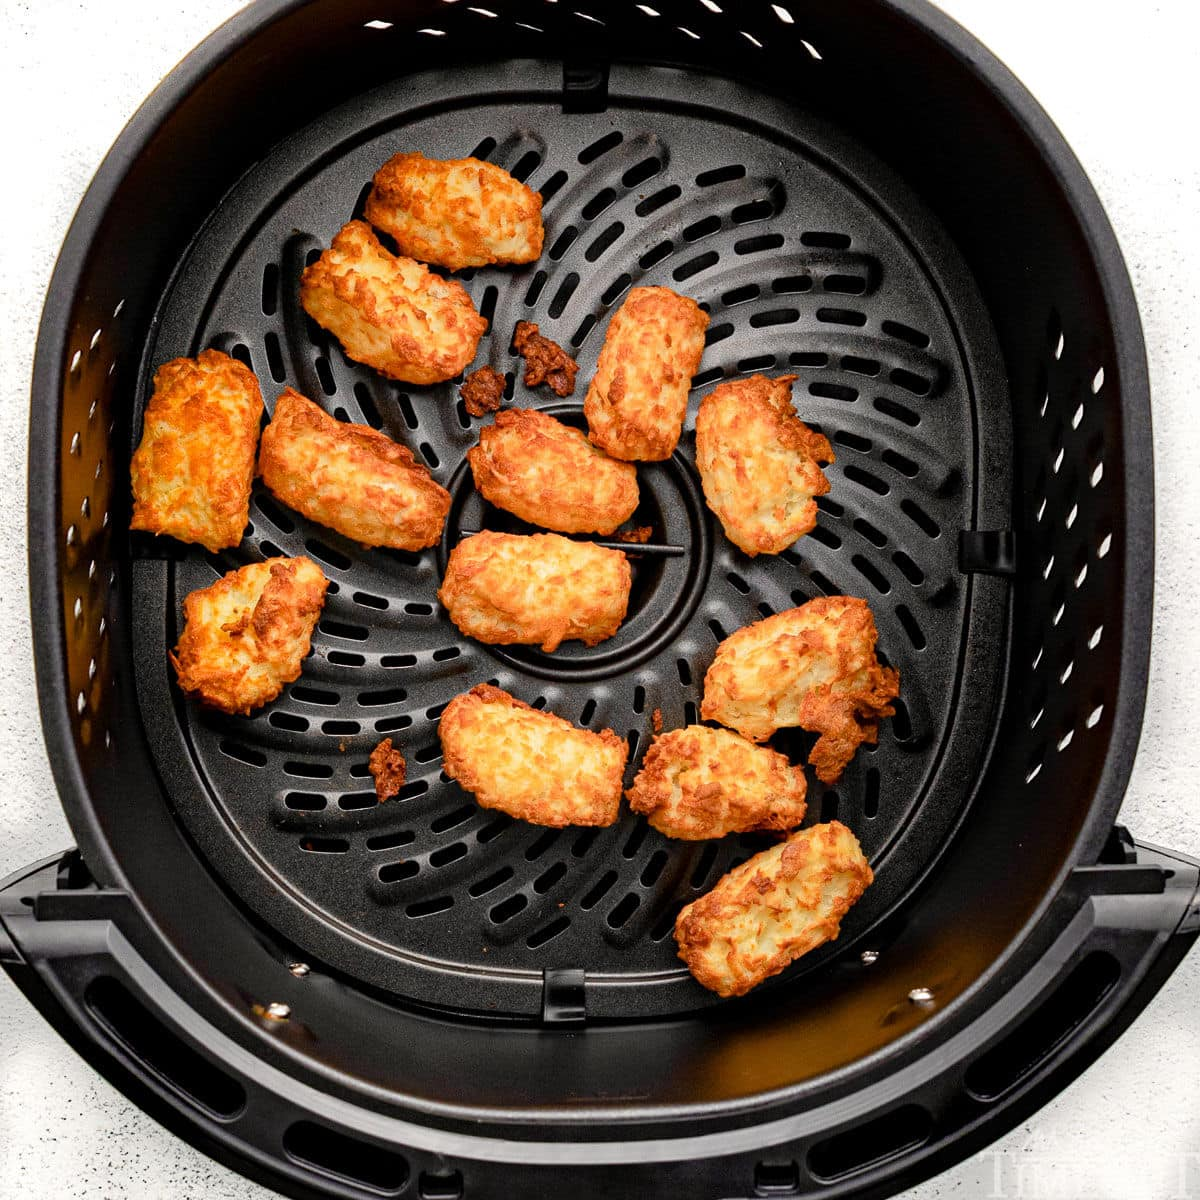 cooked tater tots in air fryer.